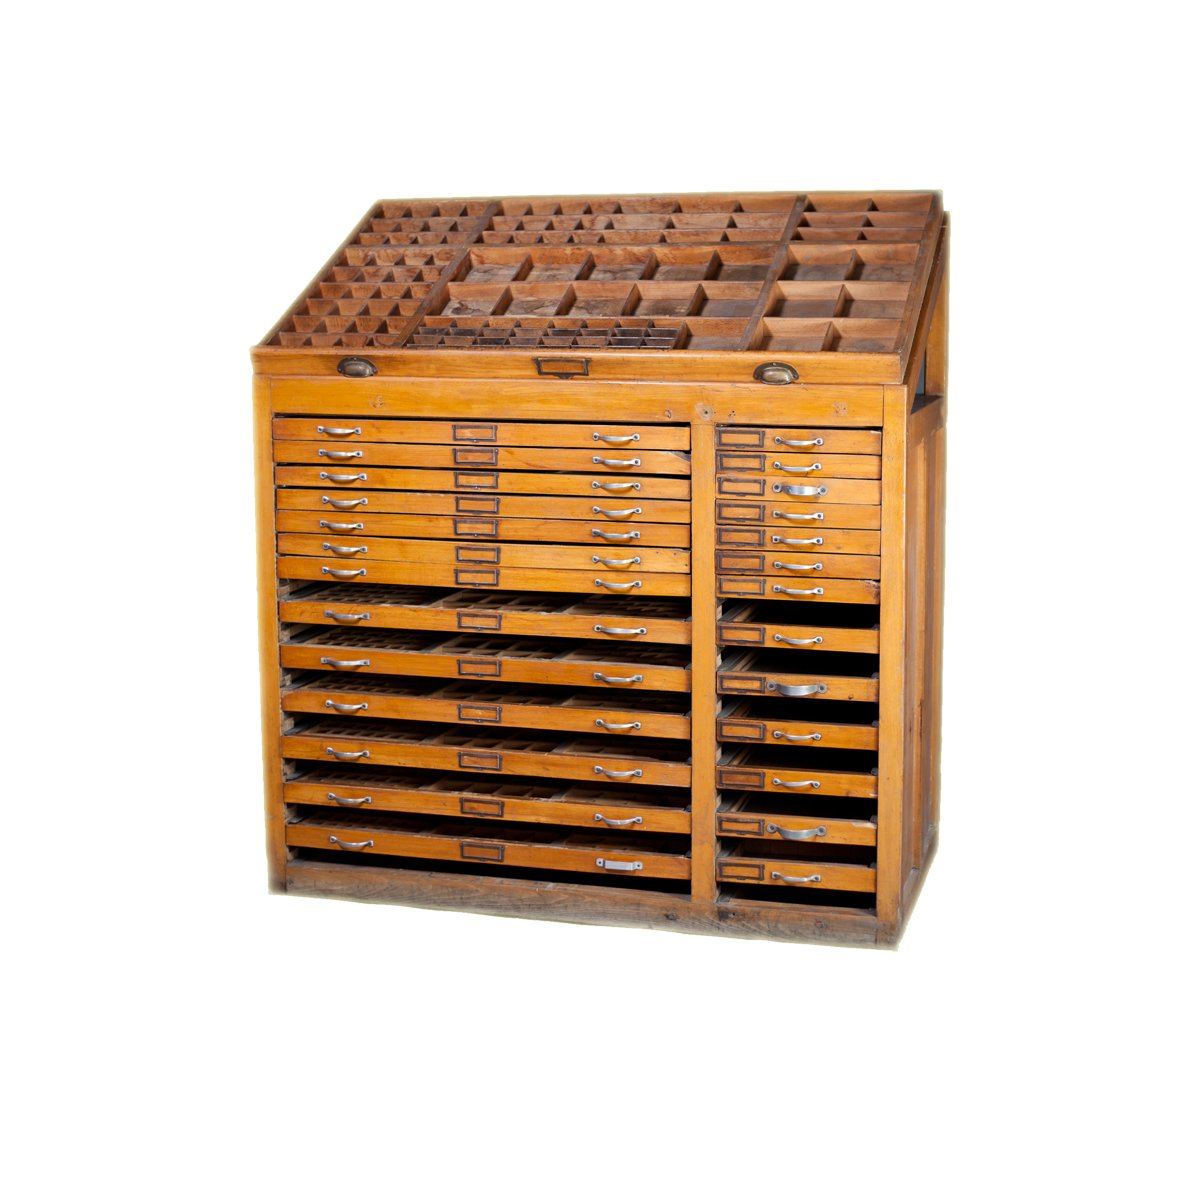 Antique Printers Cabinet, 1890s - Antique Printers Cabinet, 1890s For Sale At Pamono